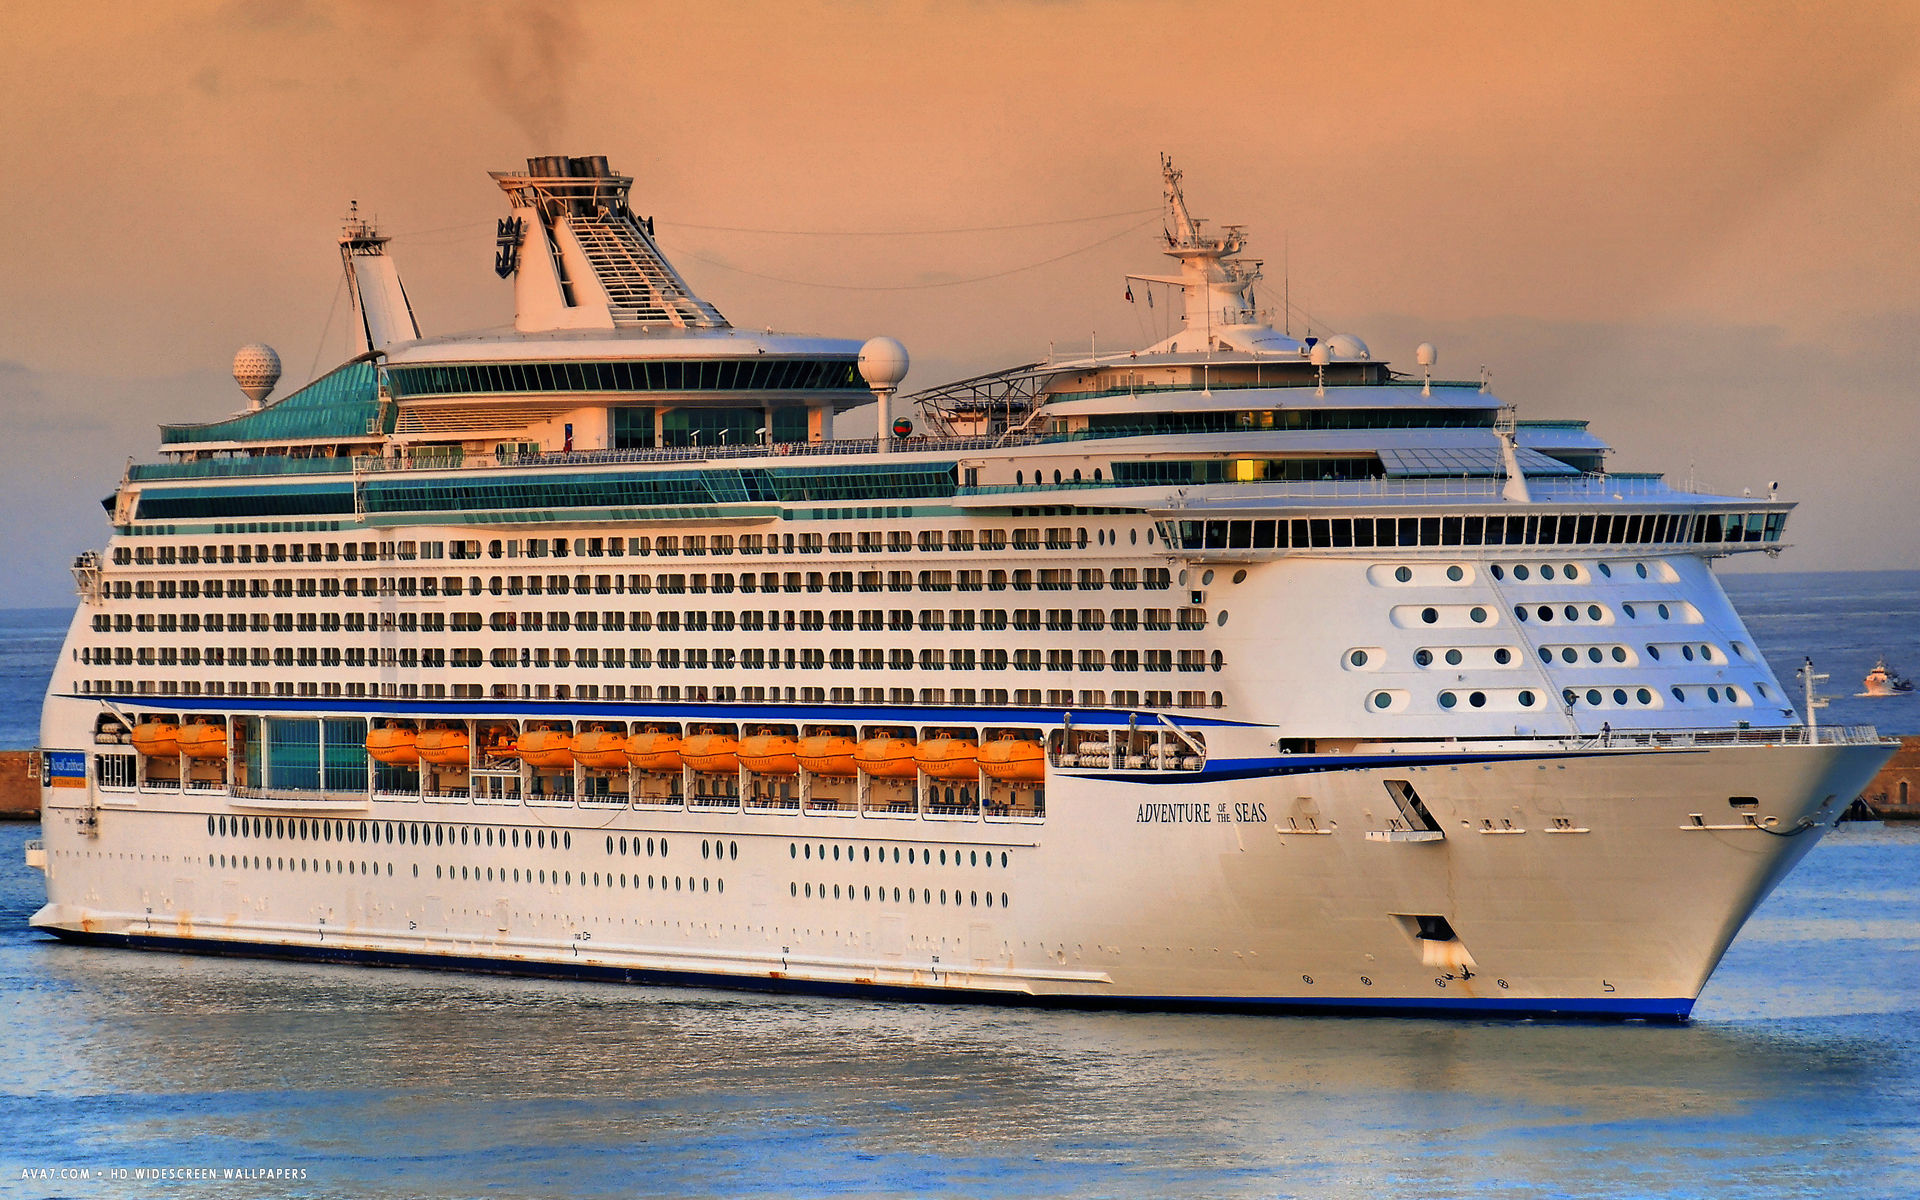 Pin Adventure Of The Seas On Pinterest